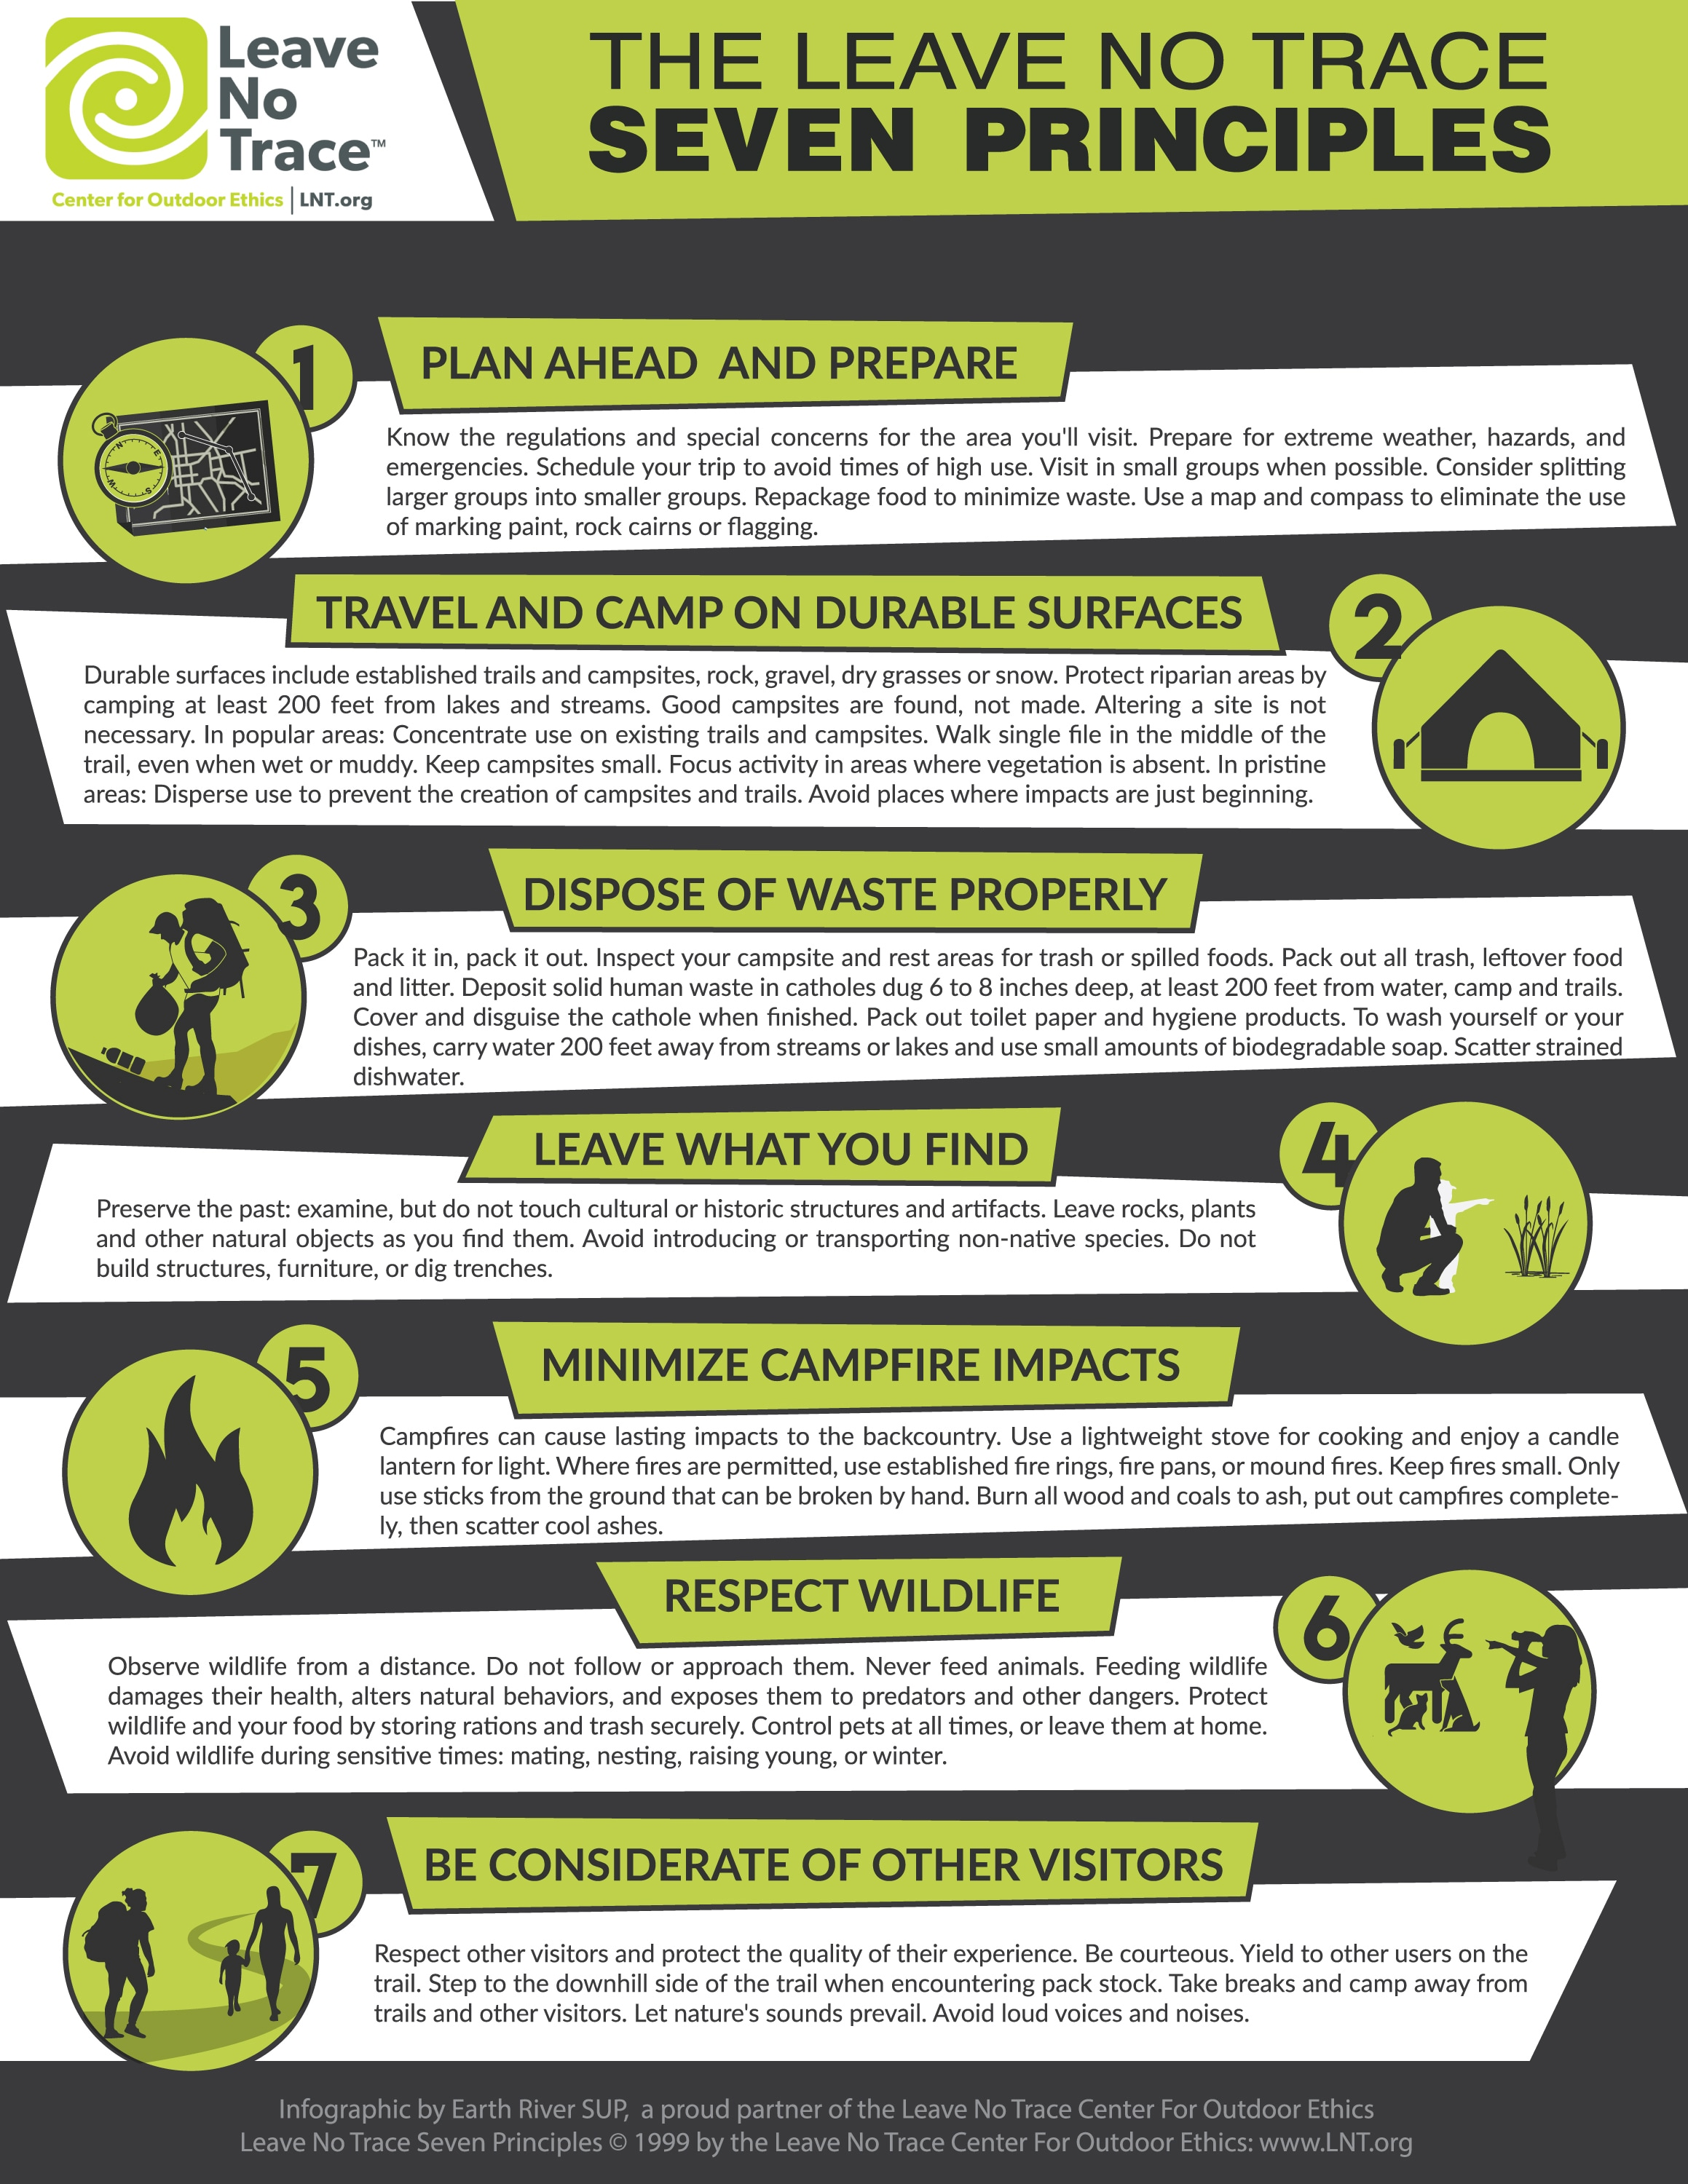 photo relating to Leave No Trace Printable called 7 Basics of Go away No Hint [Infographic] Entire world River SUP